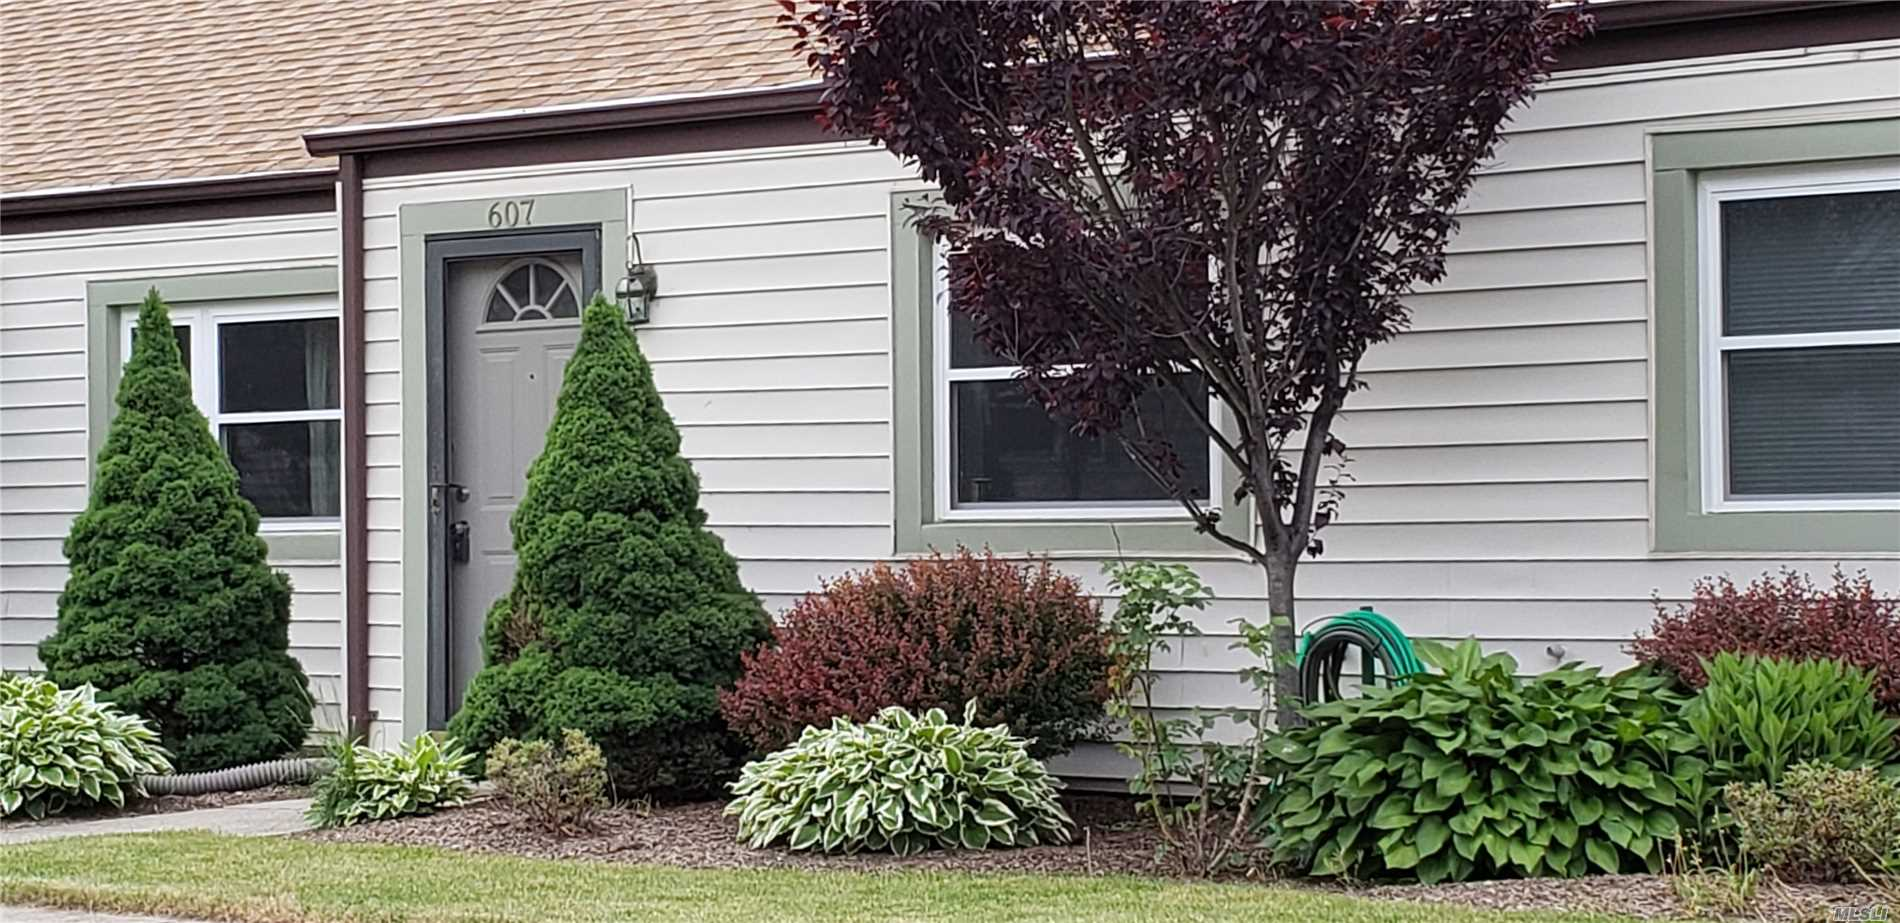 Property for sale at 607 Lake Ct, Middle Island,  NY 11953